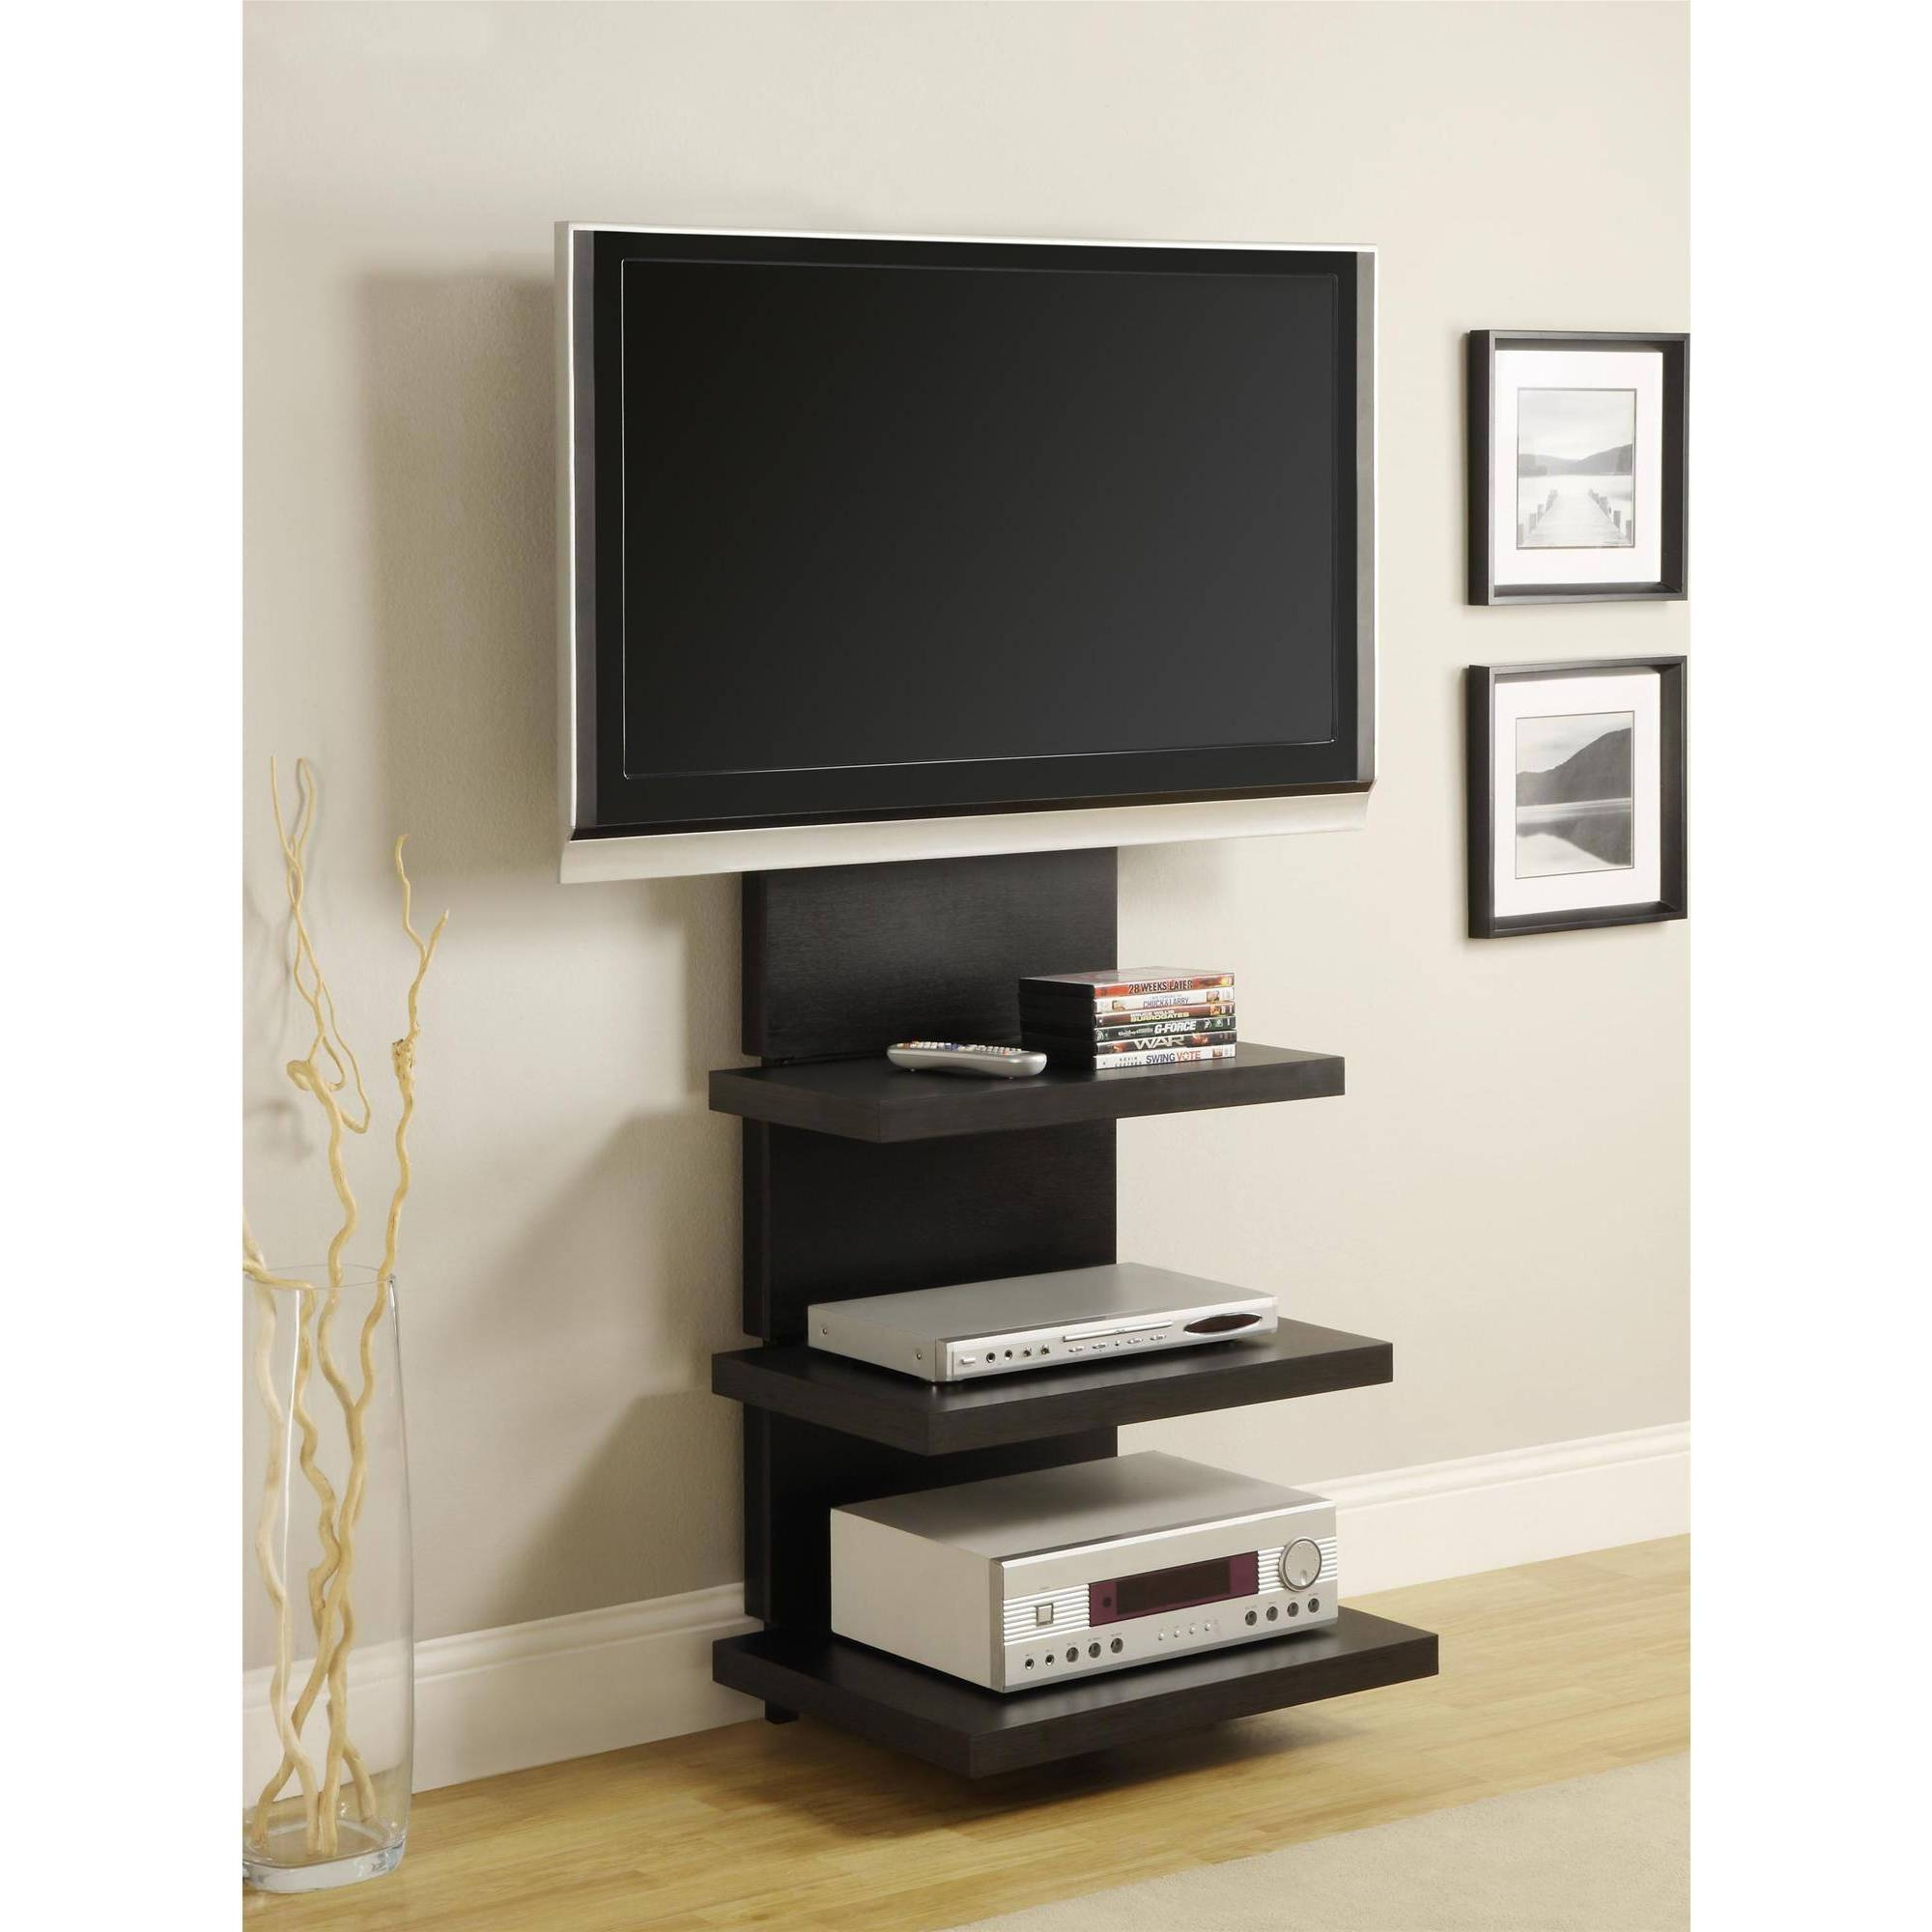 Better Homes And Gardens Crossmill Fireplace Media Console inside 24 Inch Tall Tv Stands (Image 7 of 15)